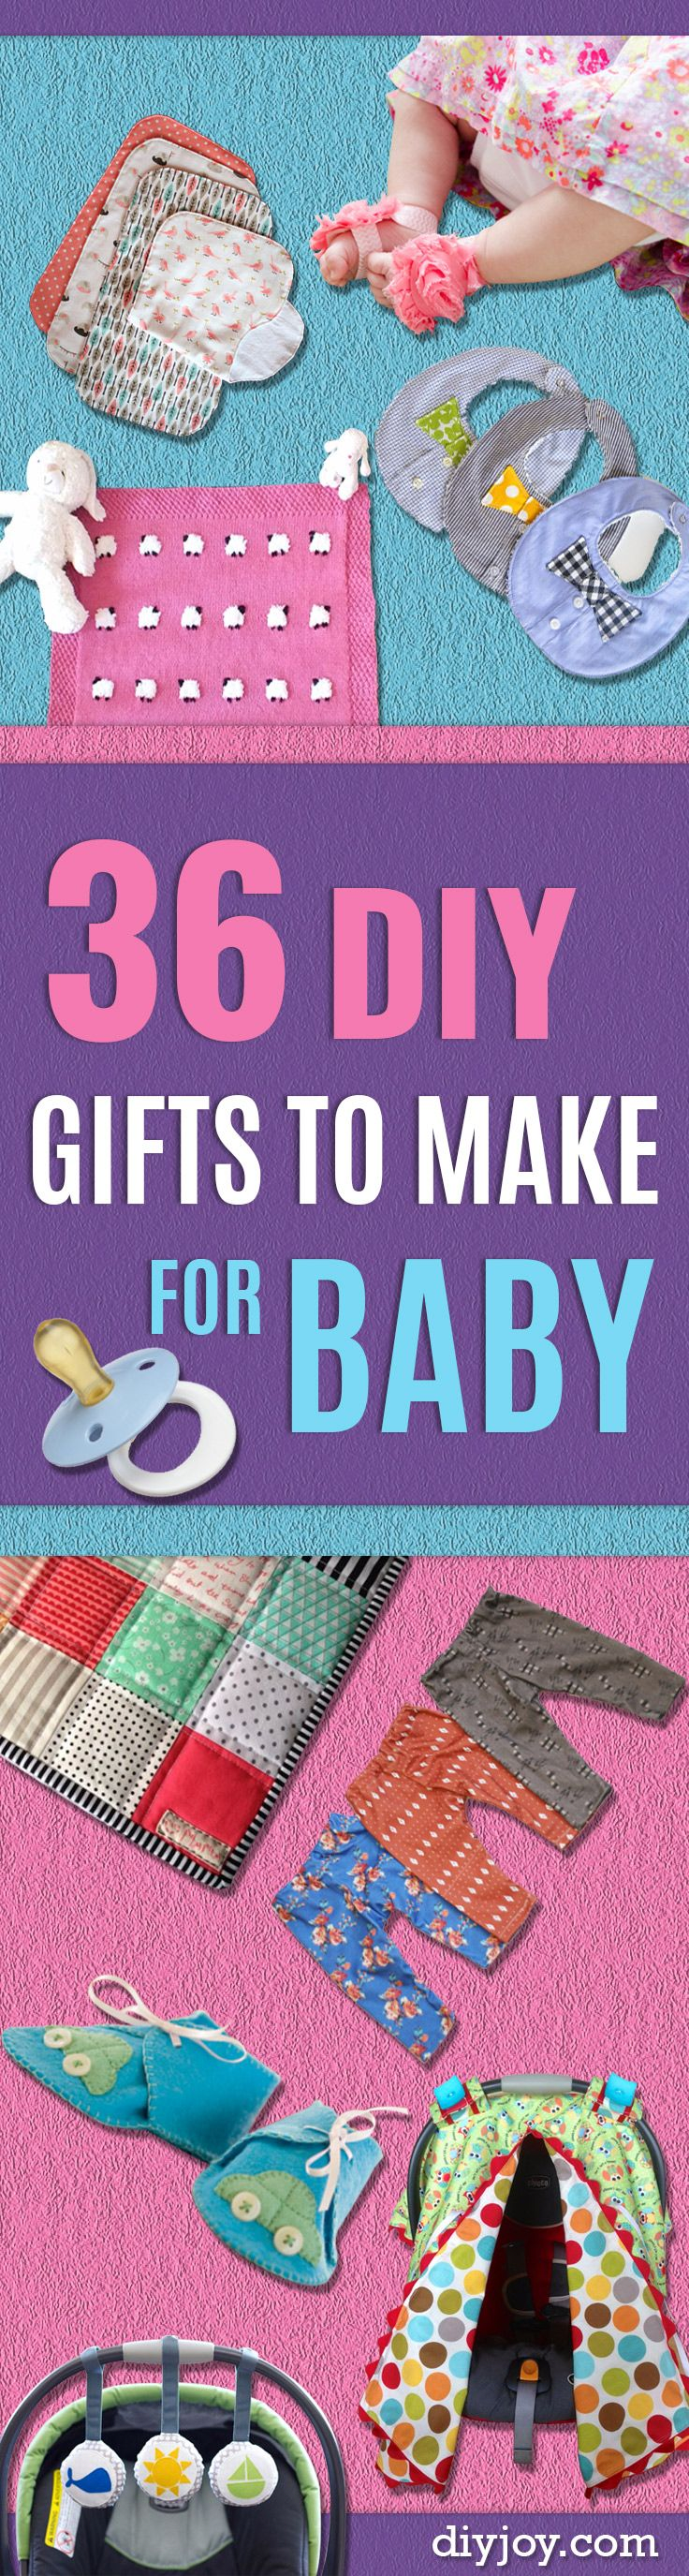 Basket Gifts Diy Gifts For Babies Best Diy Gift Ideas